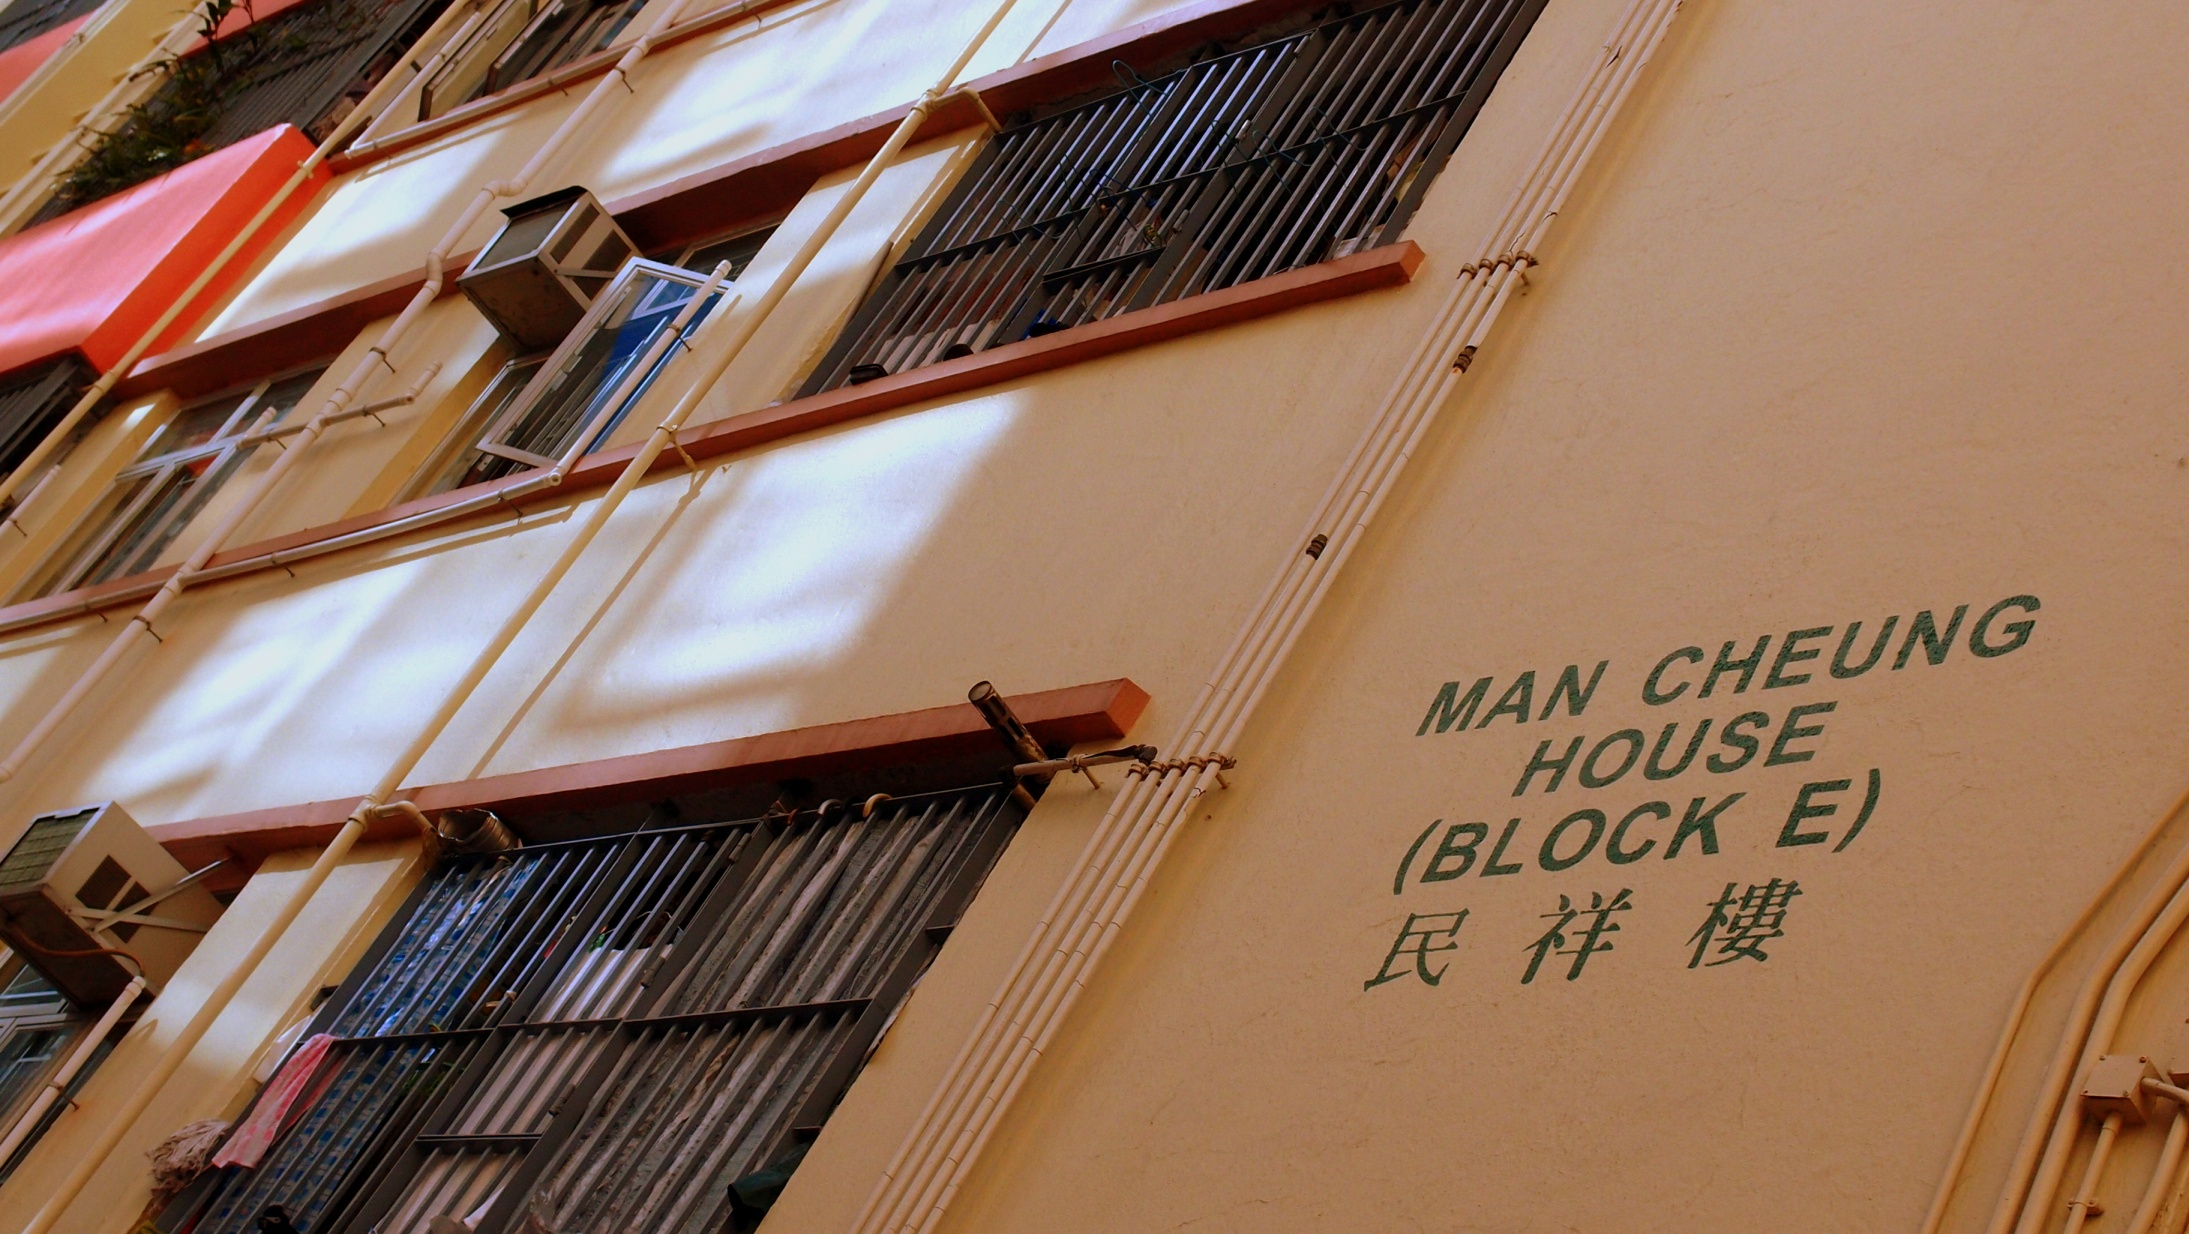 A fairly typical public housing estate in Hong Kong